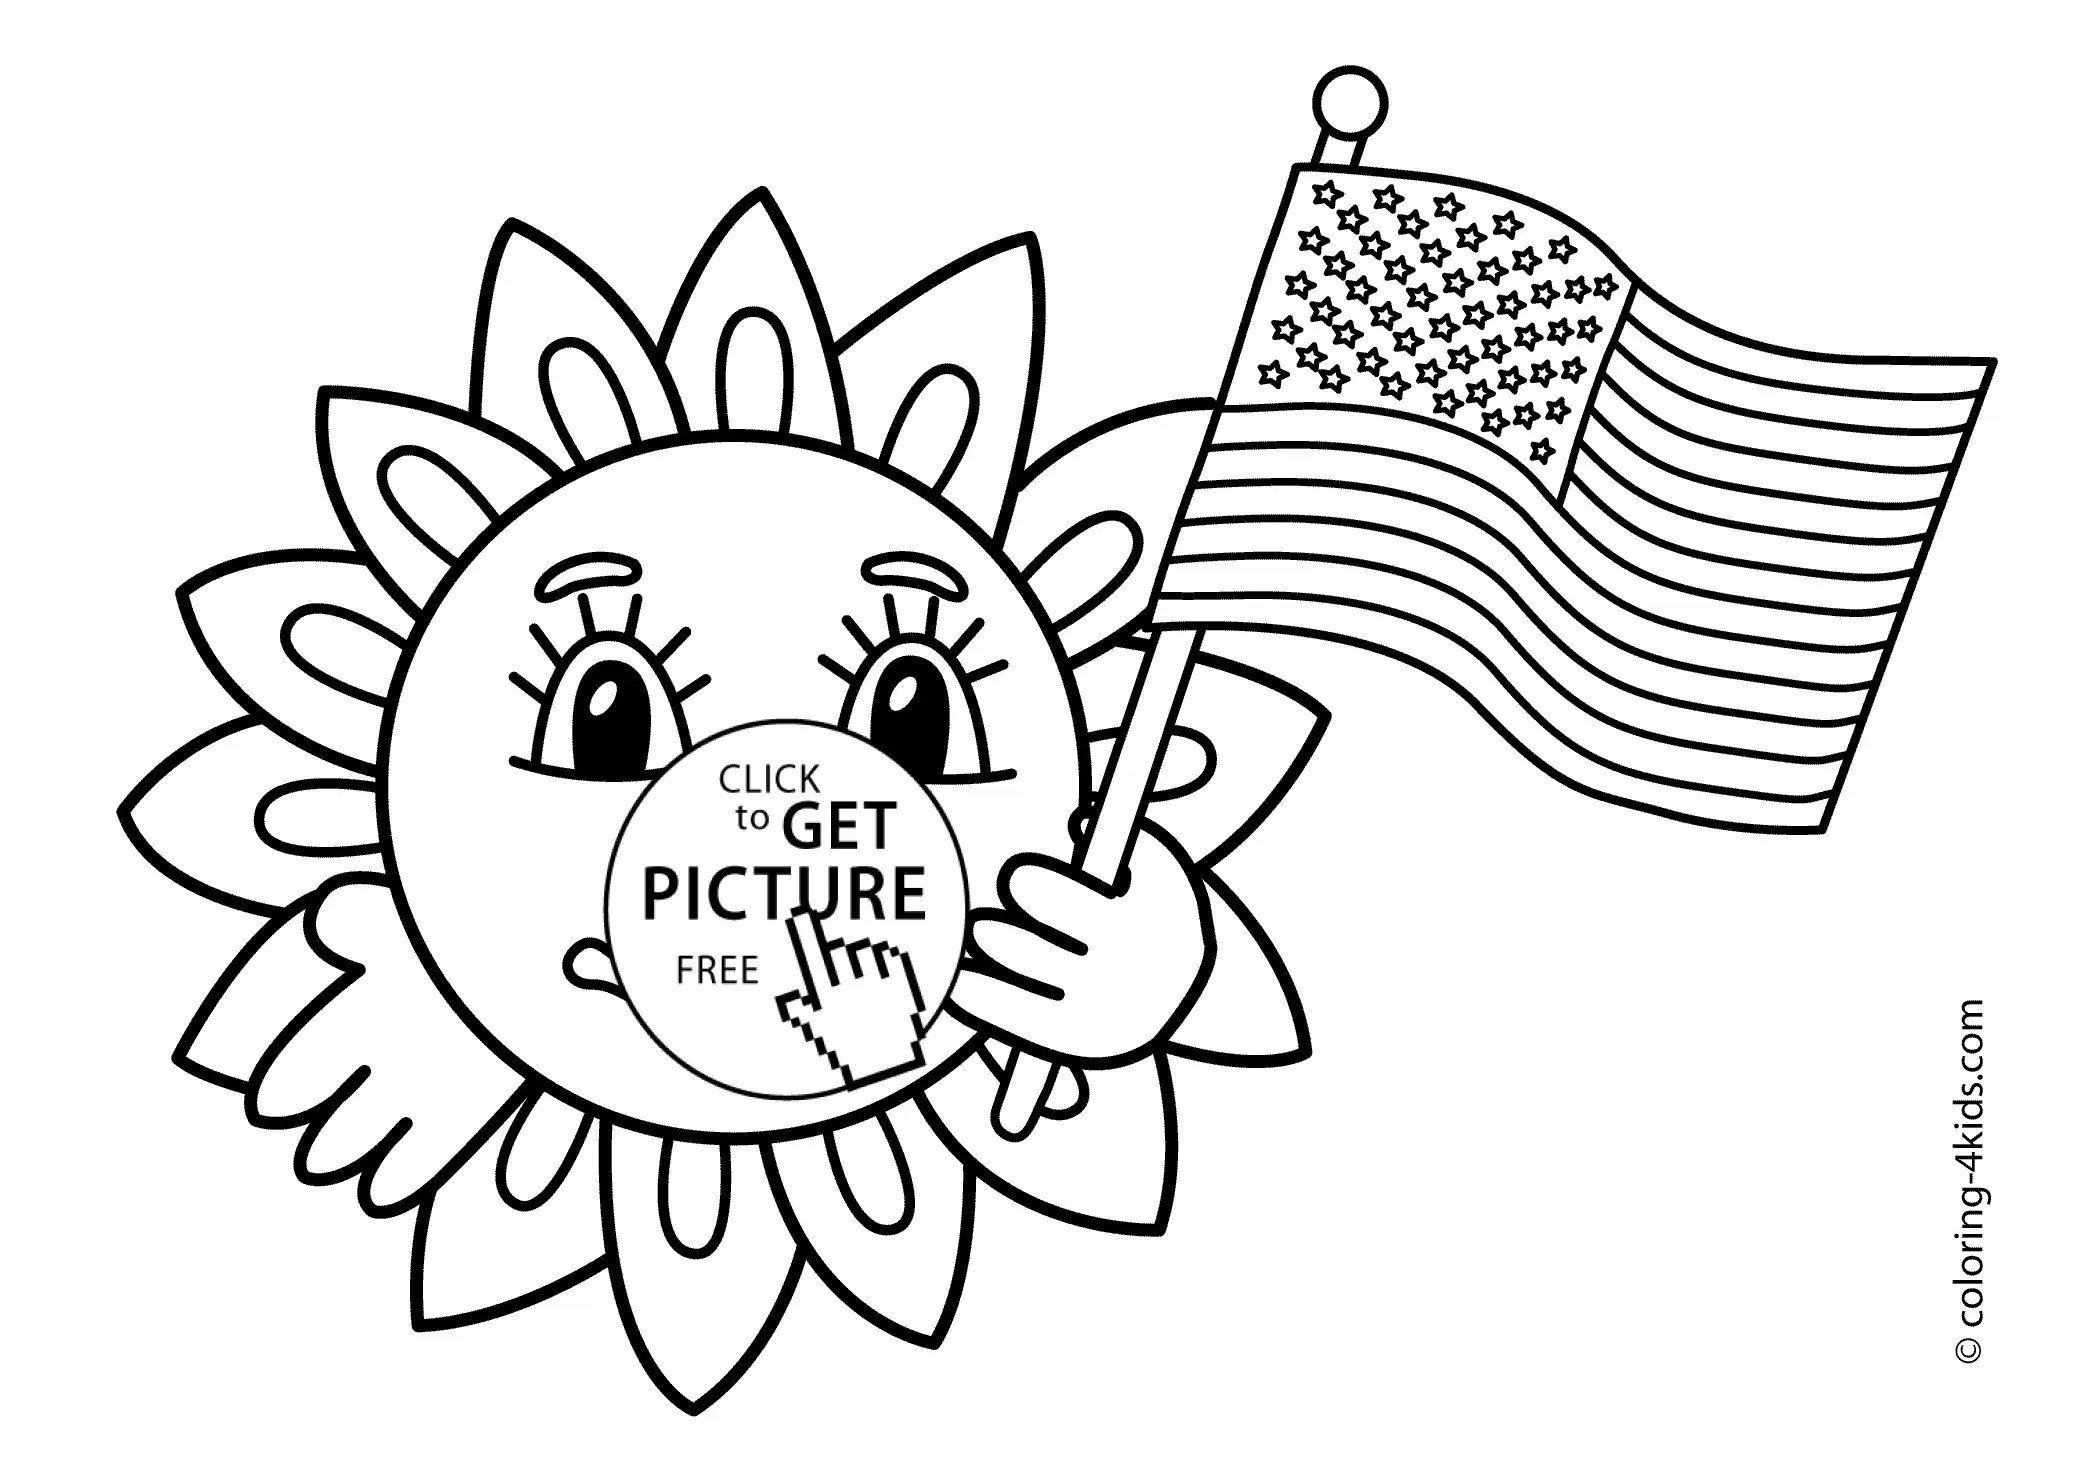 2079x1483 July 4 Rocket Coloring Pages Inspirational Happy Independence Day